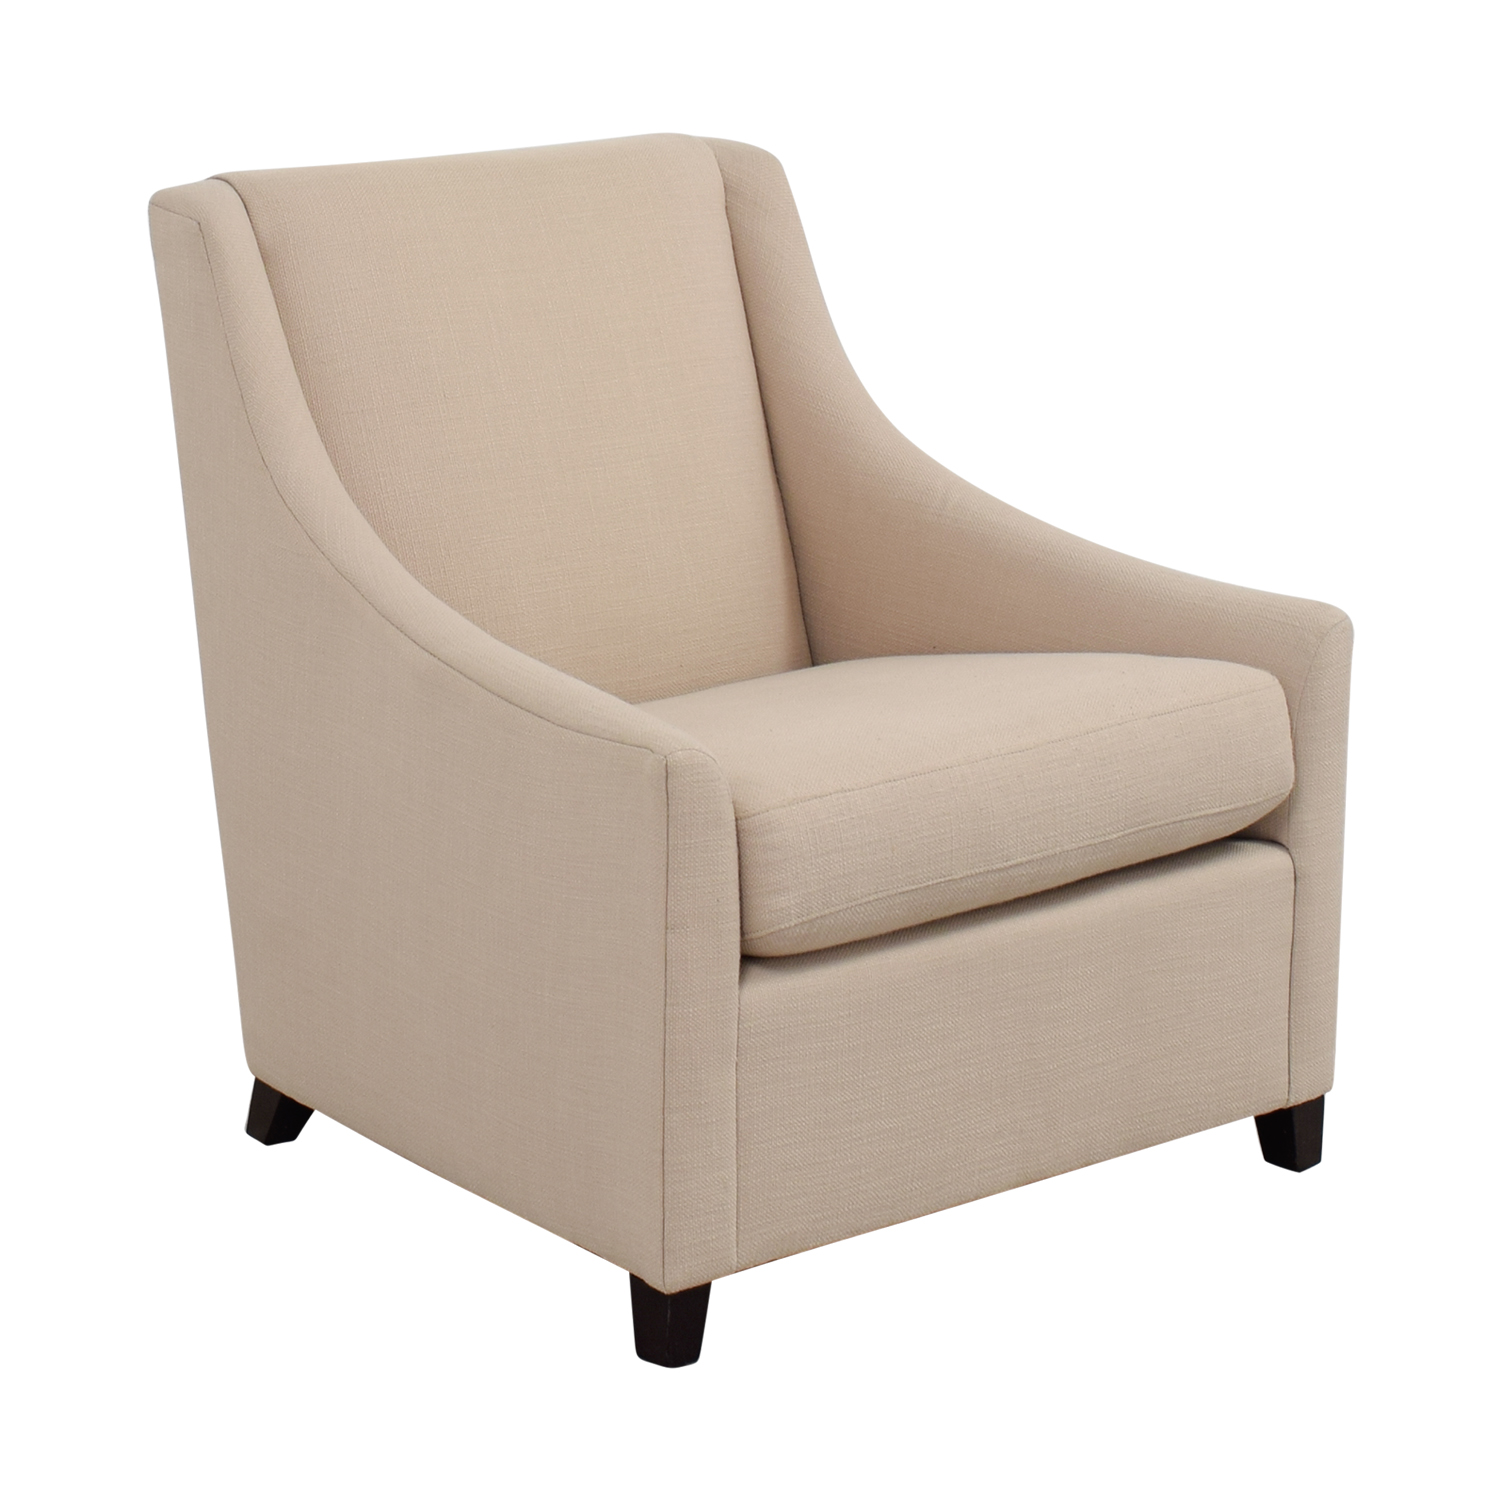 90 Off West Elm West Elm Sweep Beige Arm Chair Chairs